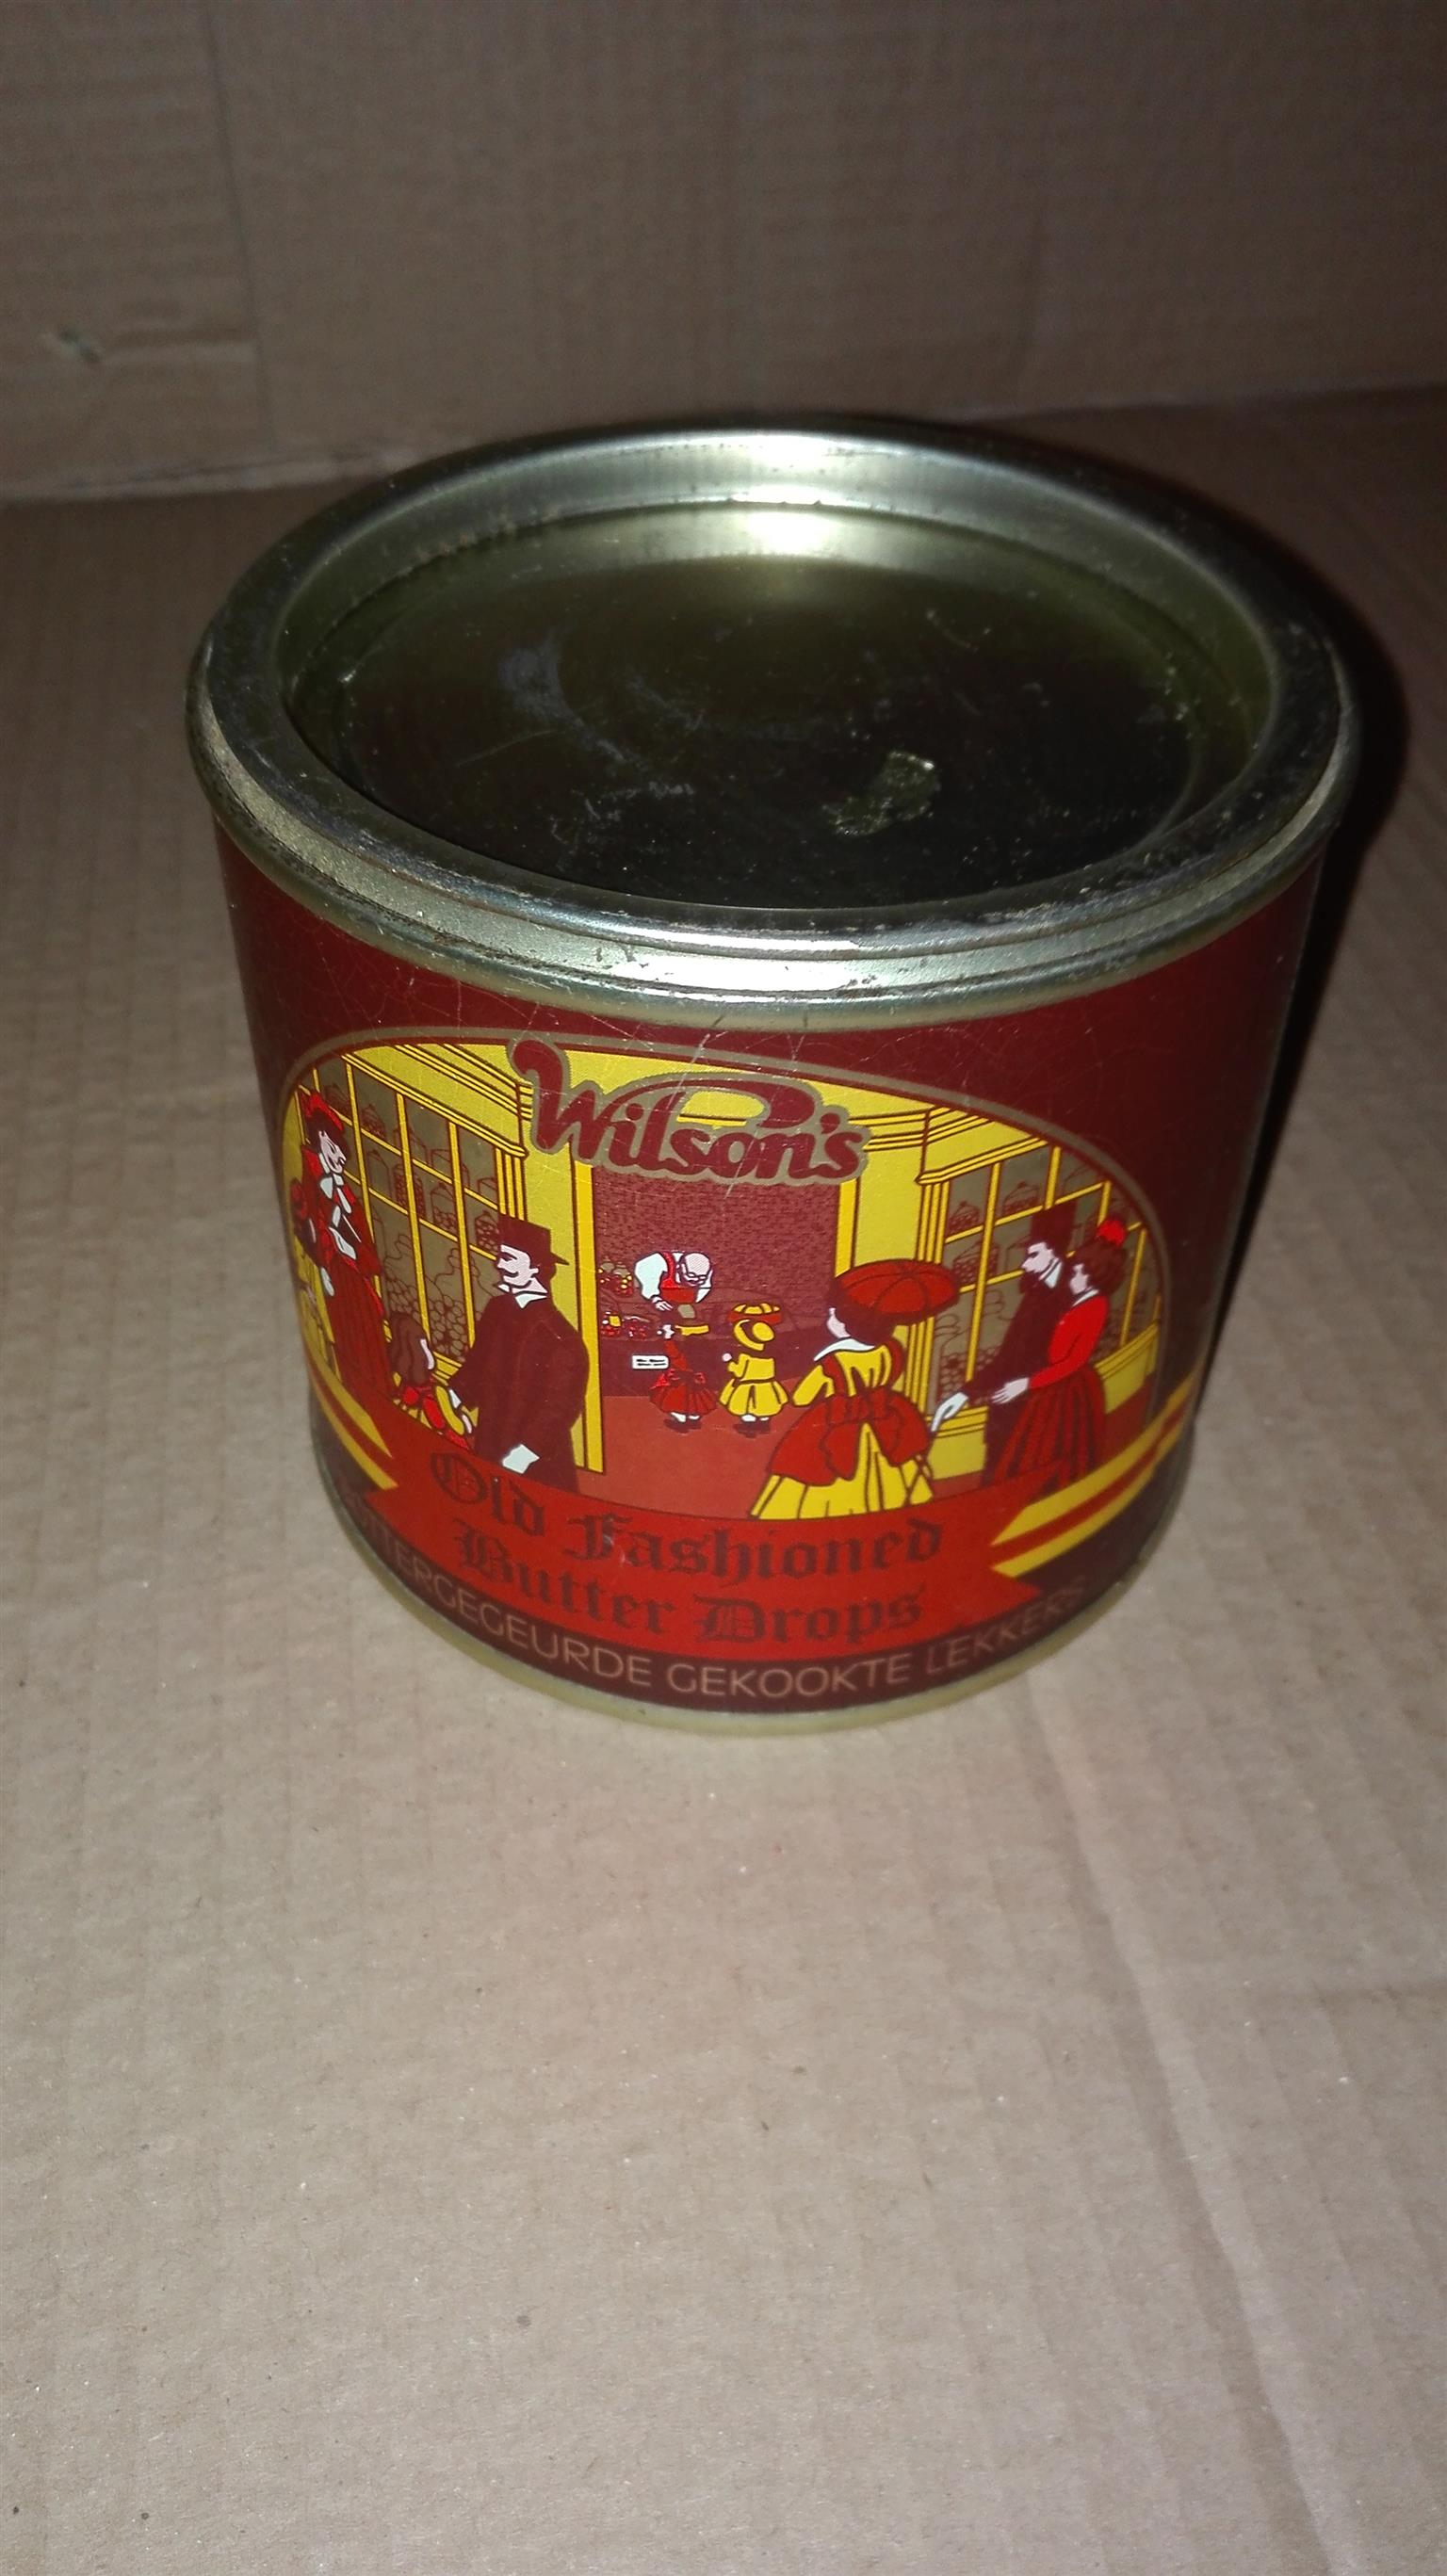 Tins from old to new